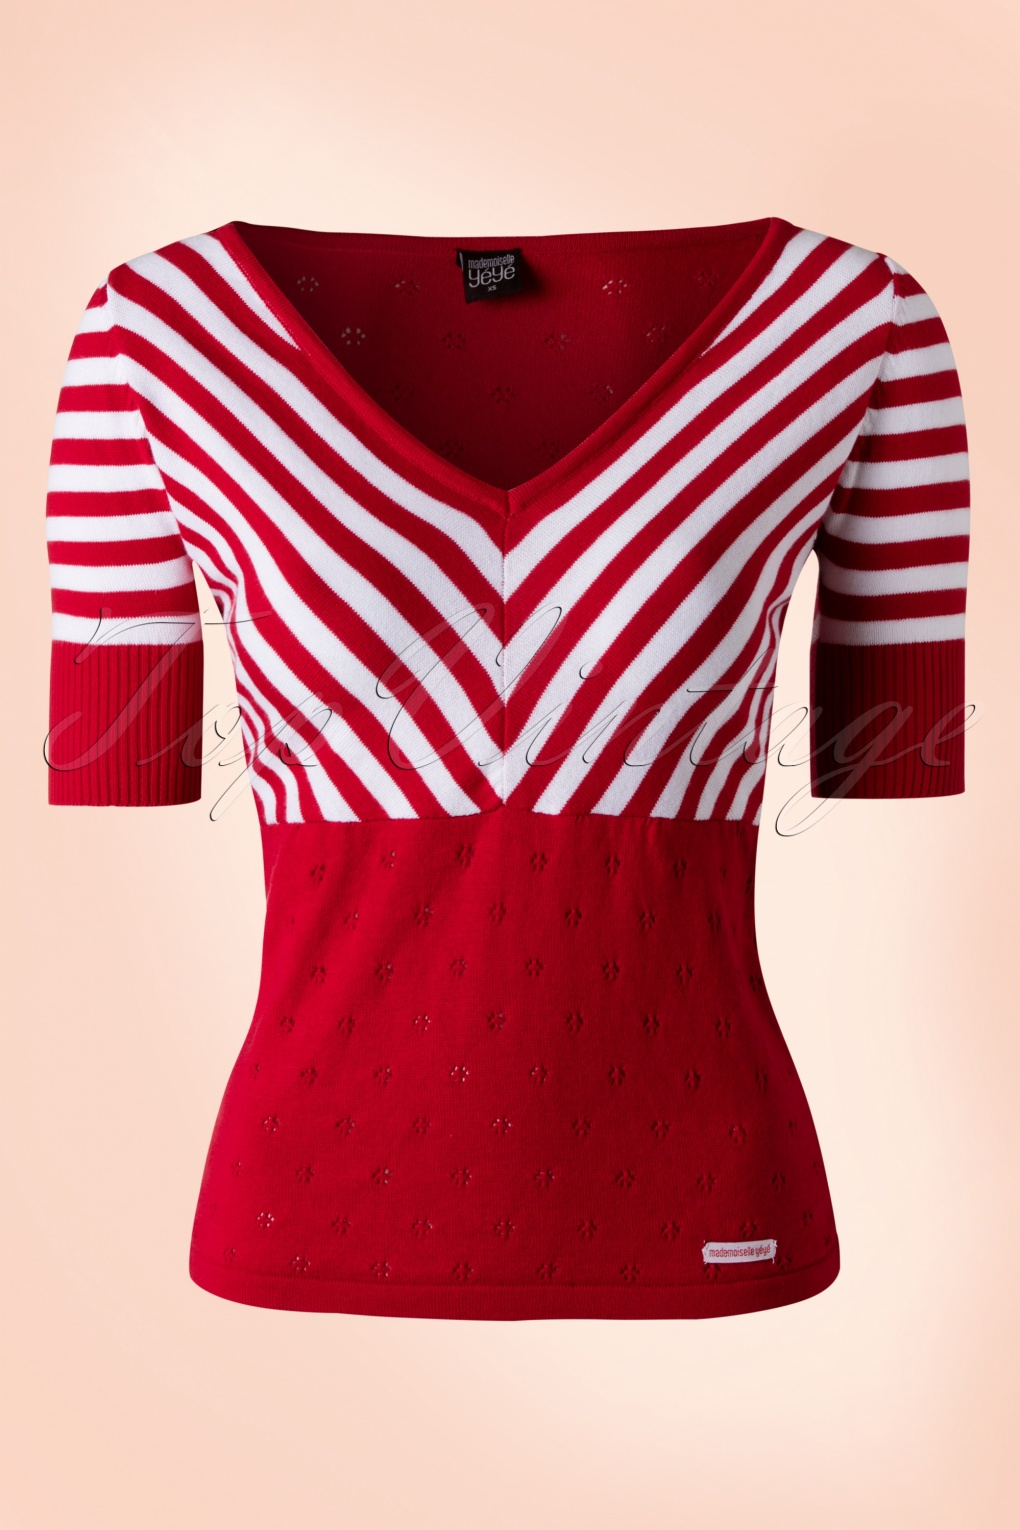 Children's sailor top in % combed white cotton with red stripes from chest down. A gorgeous Breton top suitable equally for boys and girls by French label Captain Corsaire with .